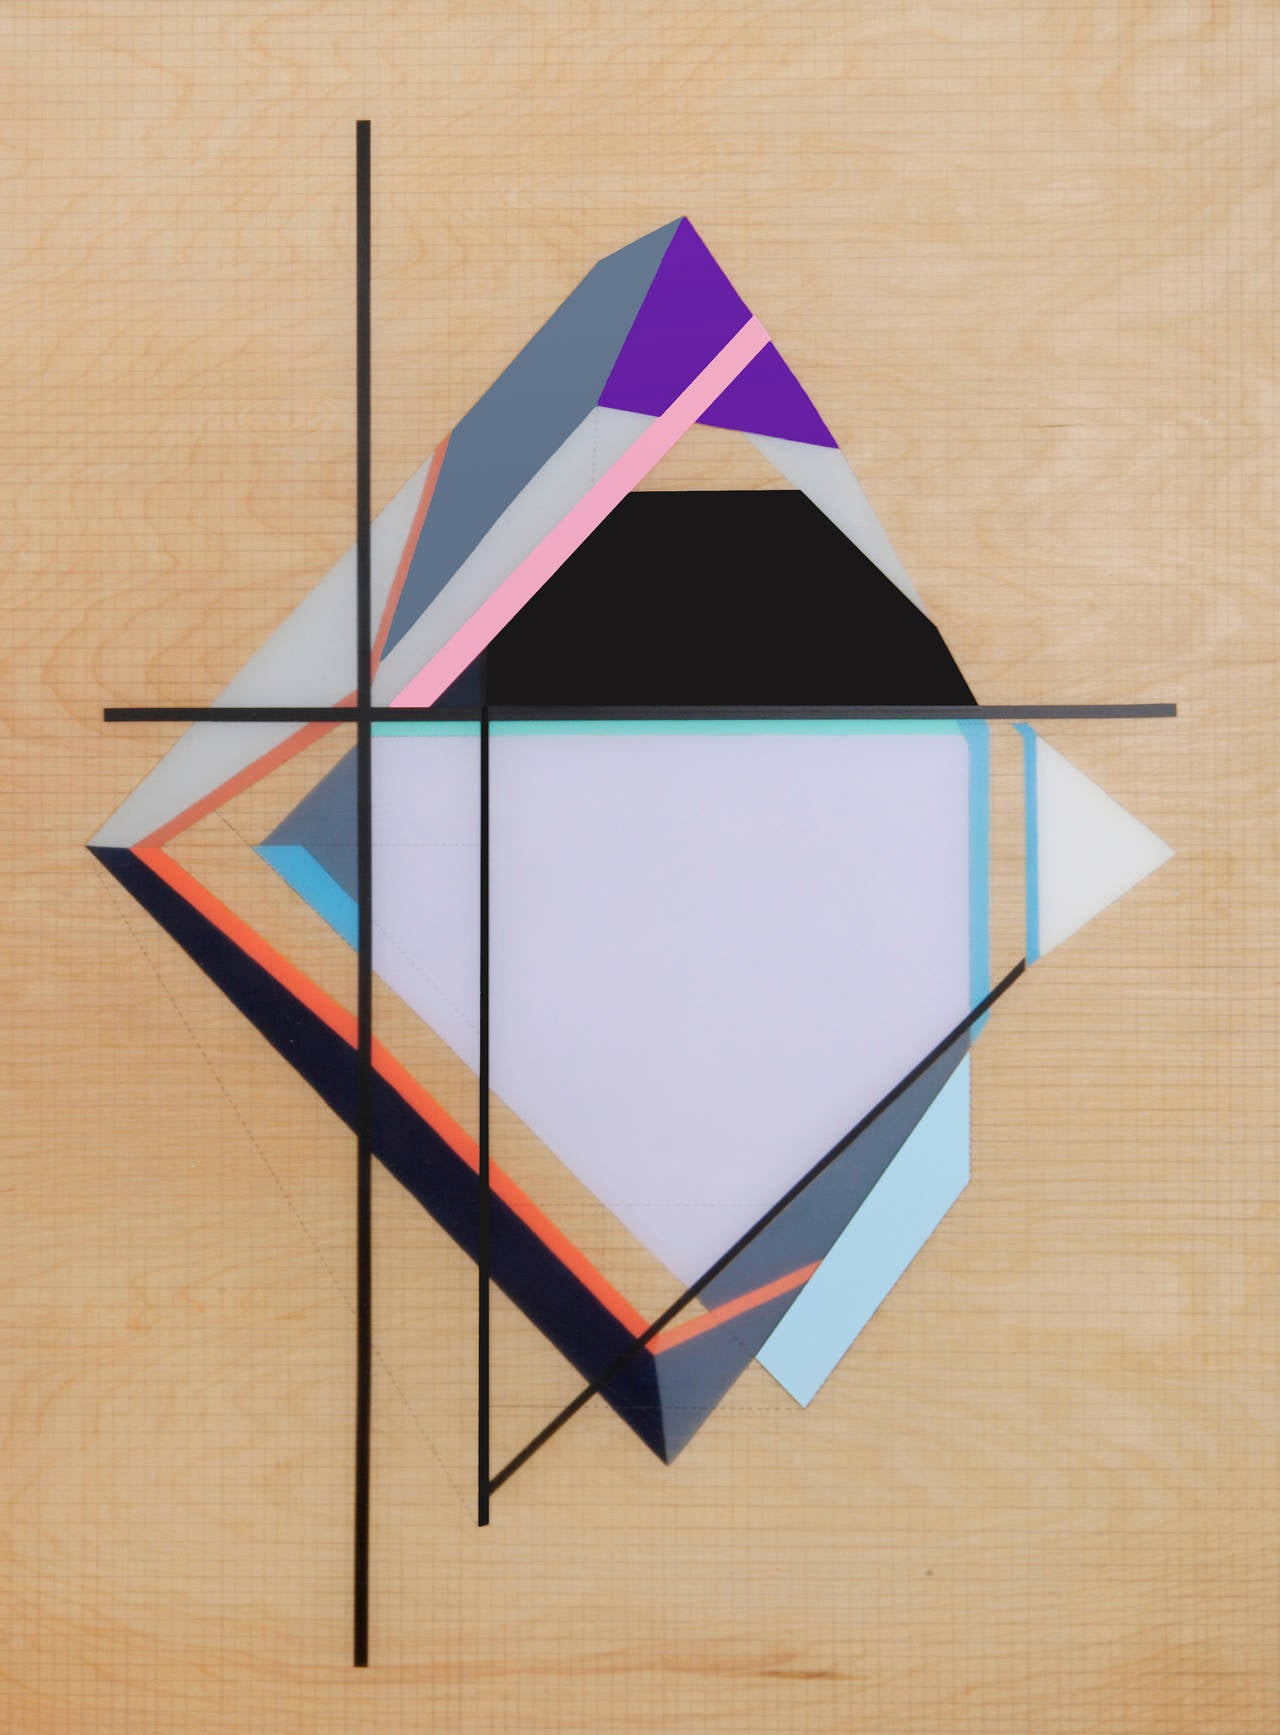 Zin Helena Song Abstract Painting - Grid Origami #5 - Purple and Black Geometric Painting on Wood